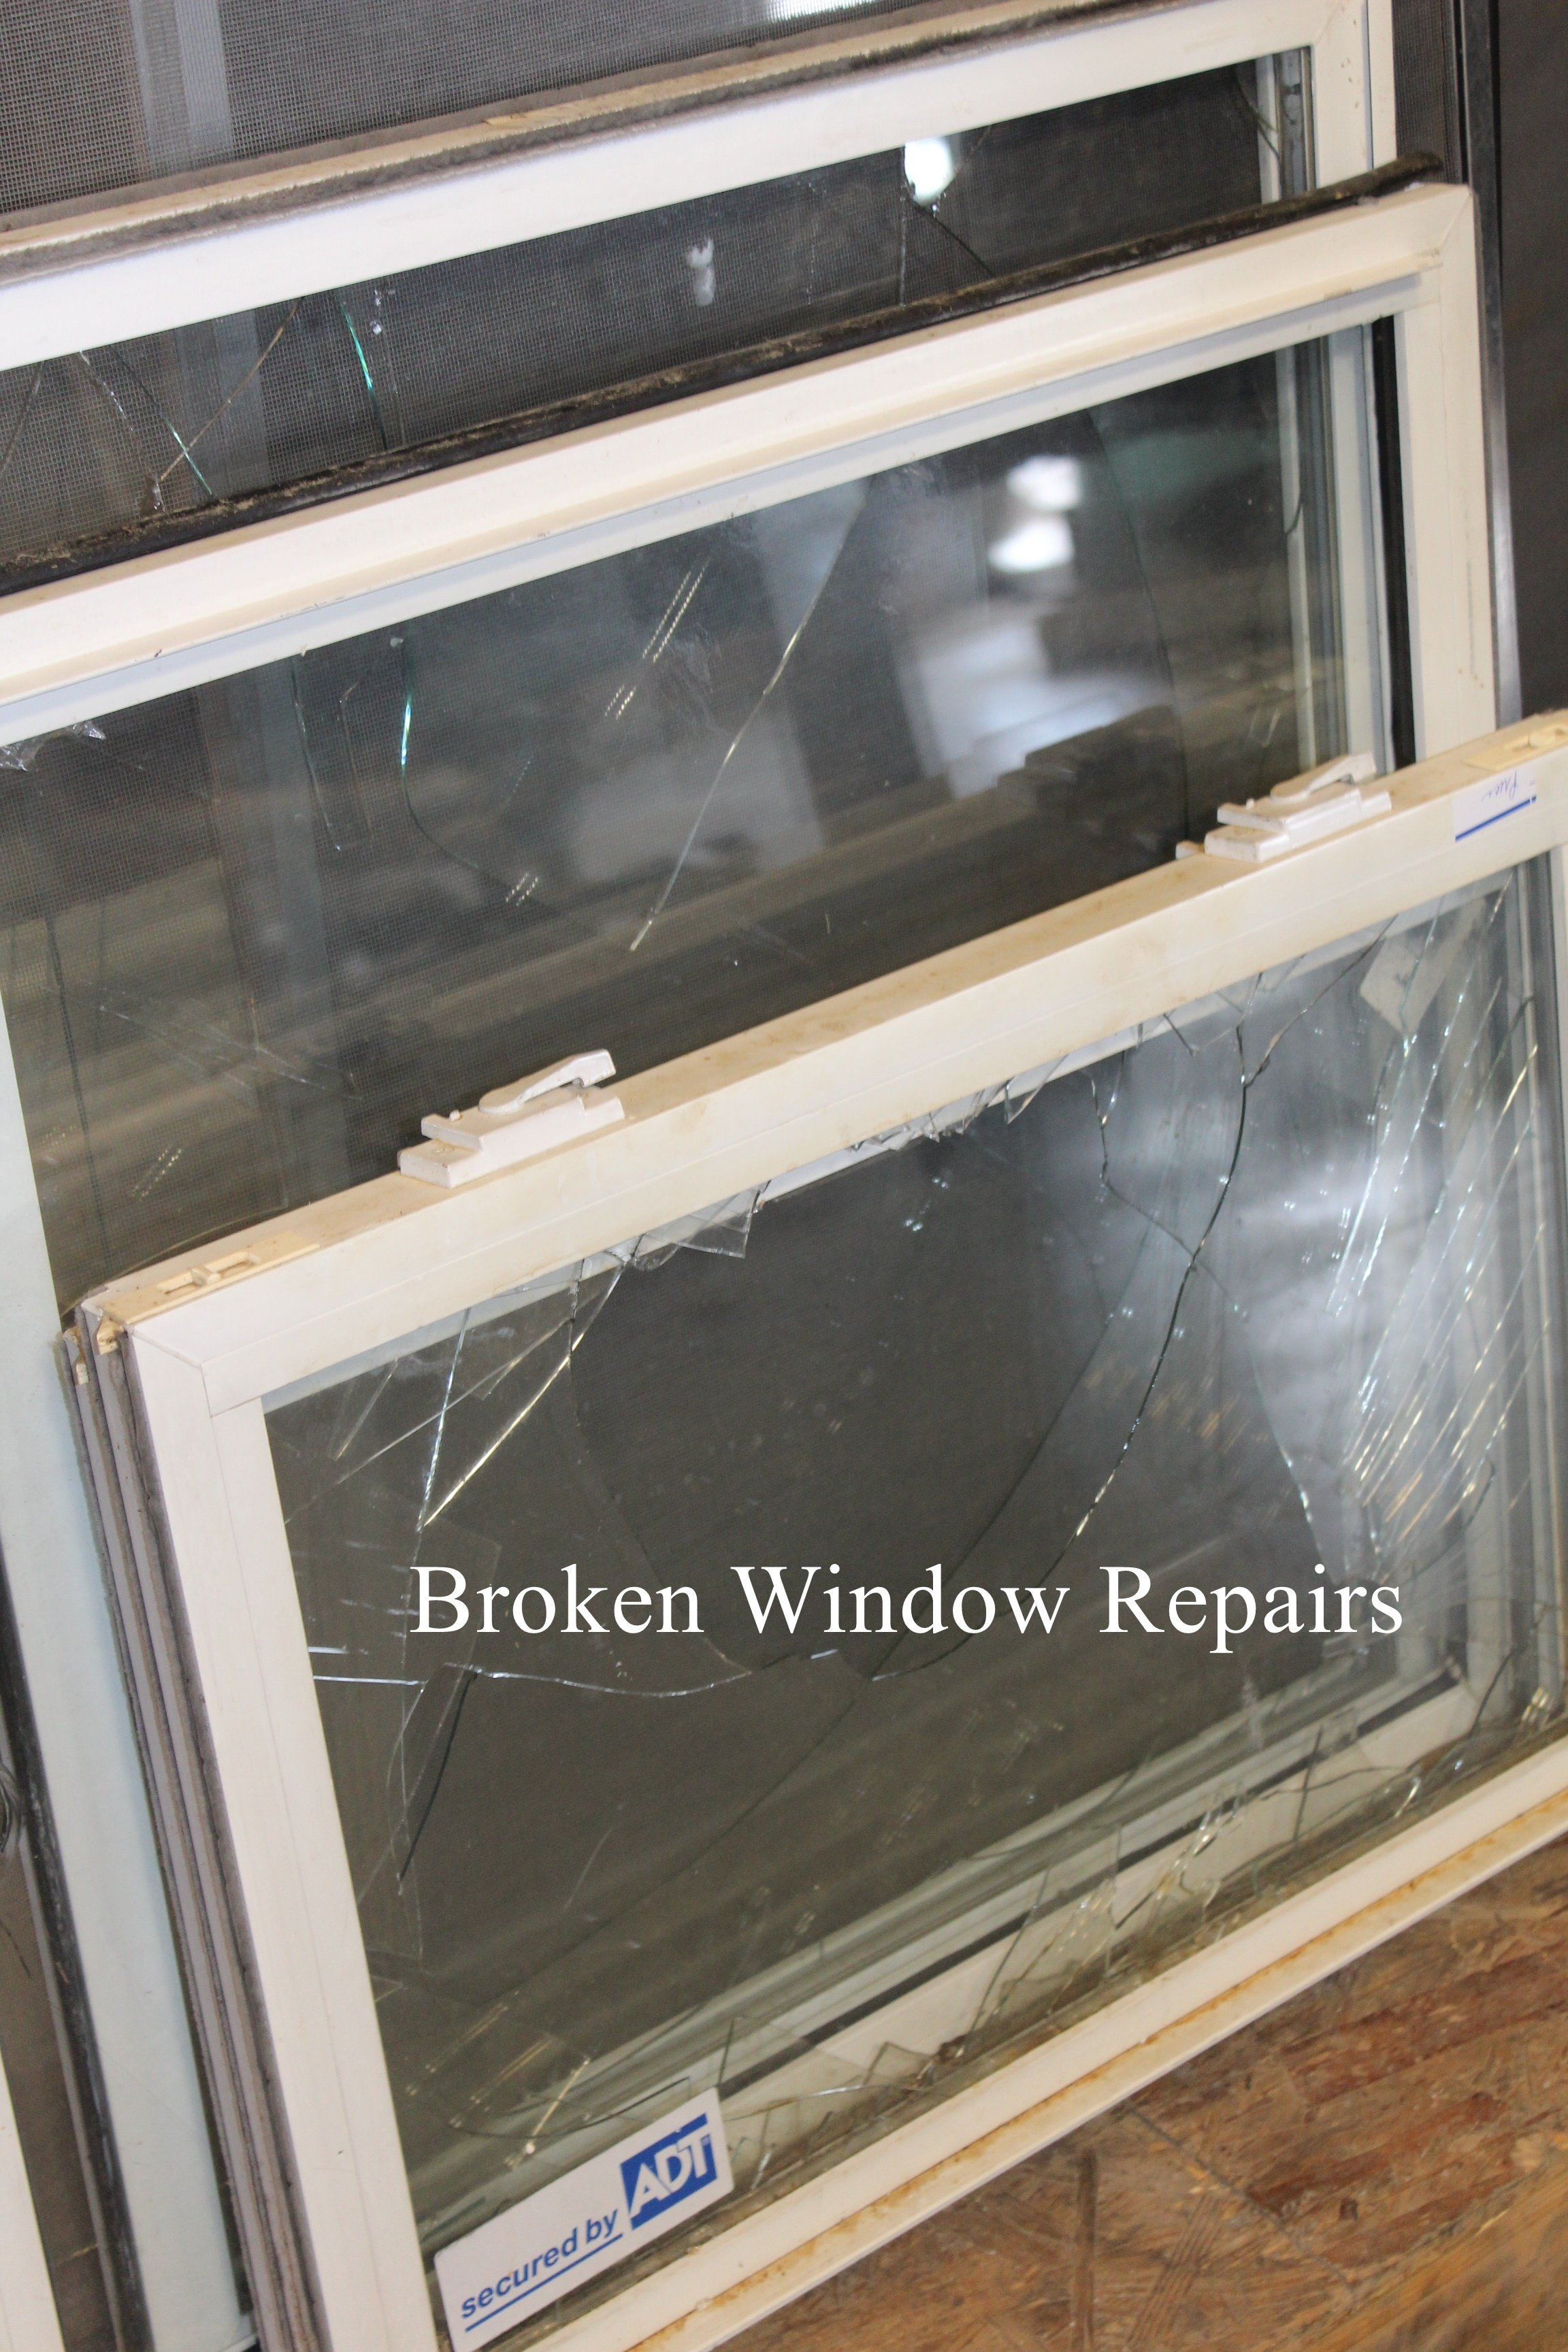 Broken Window Repairs